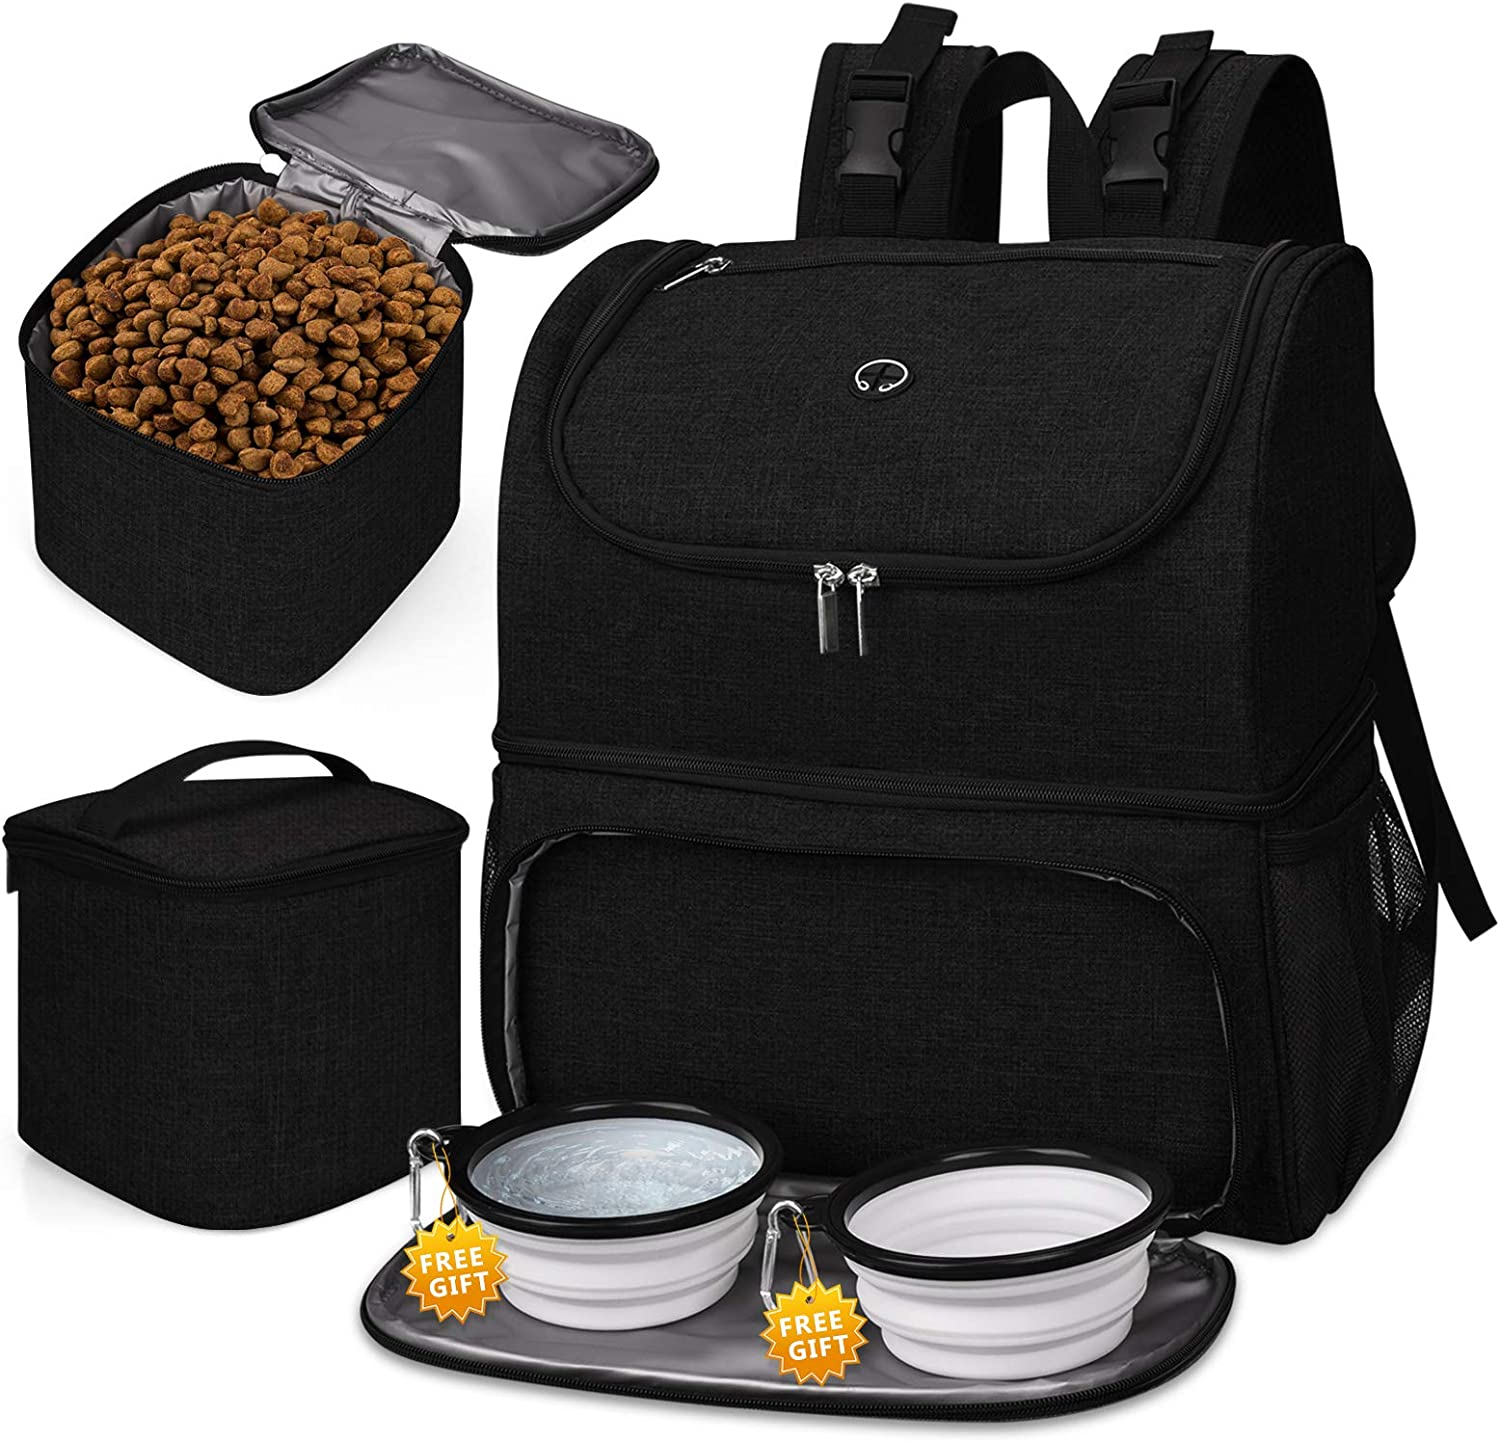 BAGLHER 丨Pet Travel Bag, Double-Layer Pet Supplies Backpack (for All Pet Travel Supplies), Pet Travel Backpack with 2 Silicone Collapsible Bowls and 2 Food Baskets. (Patent Pending)